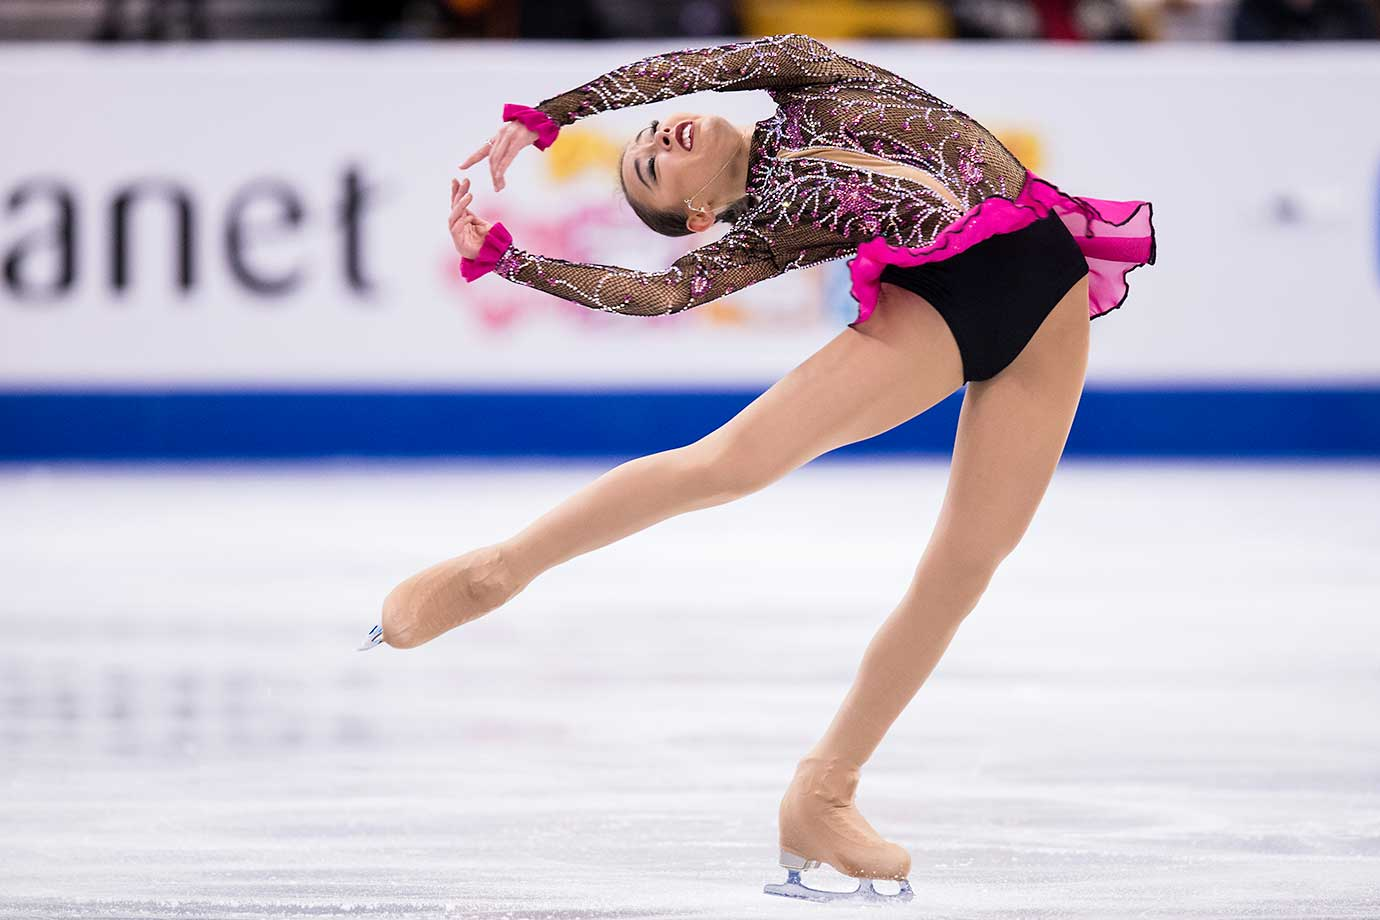 Kailani Craine of Australia performs her short program at the World Figure Skating Championships.